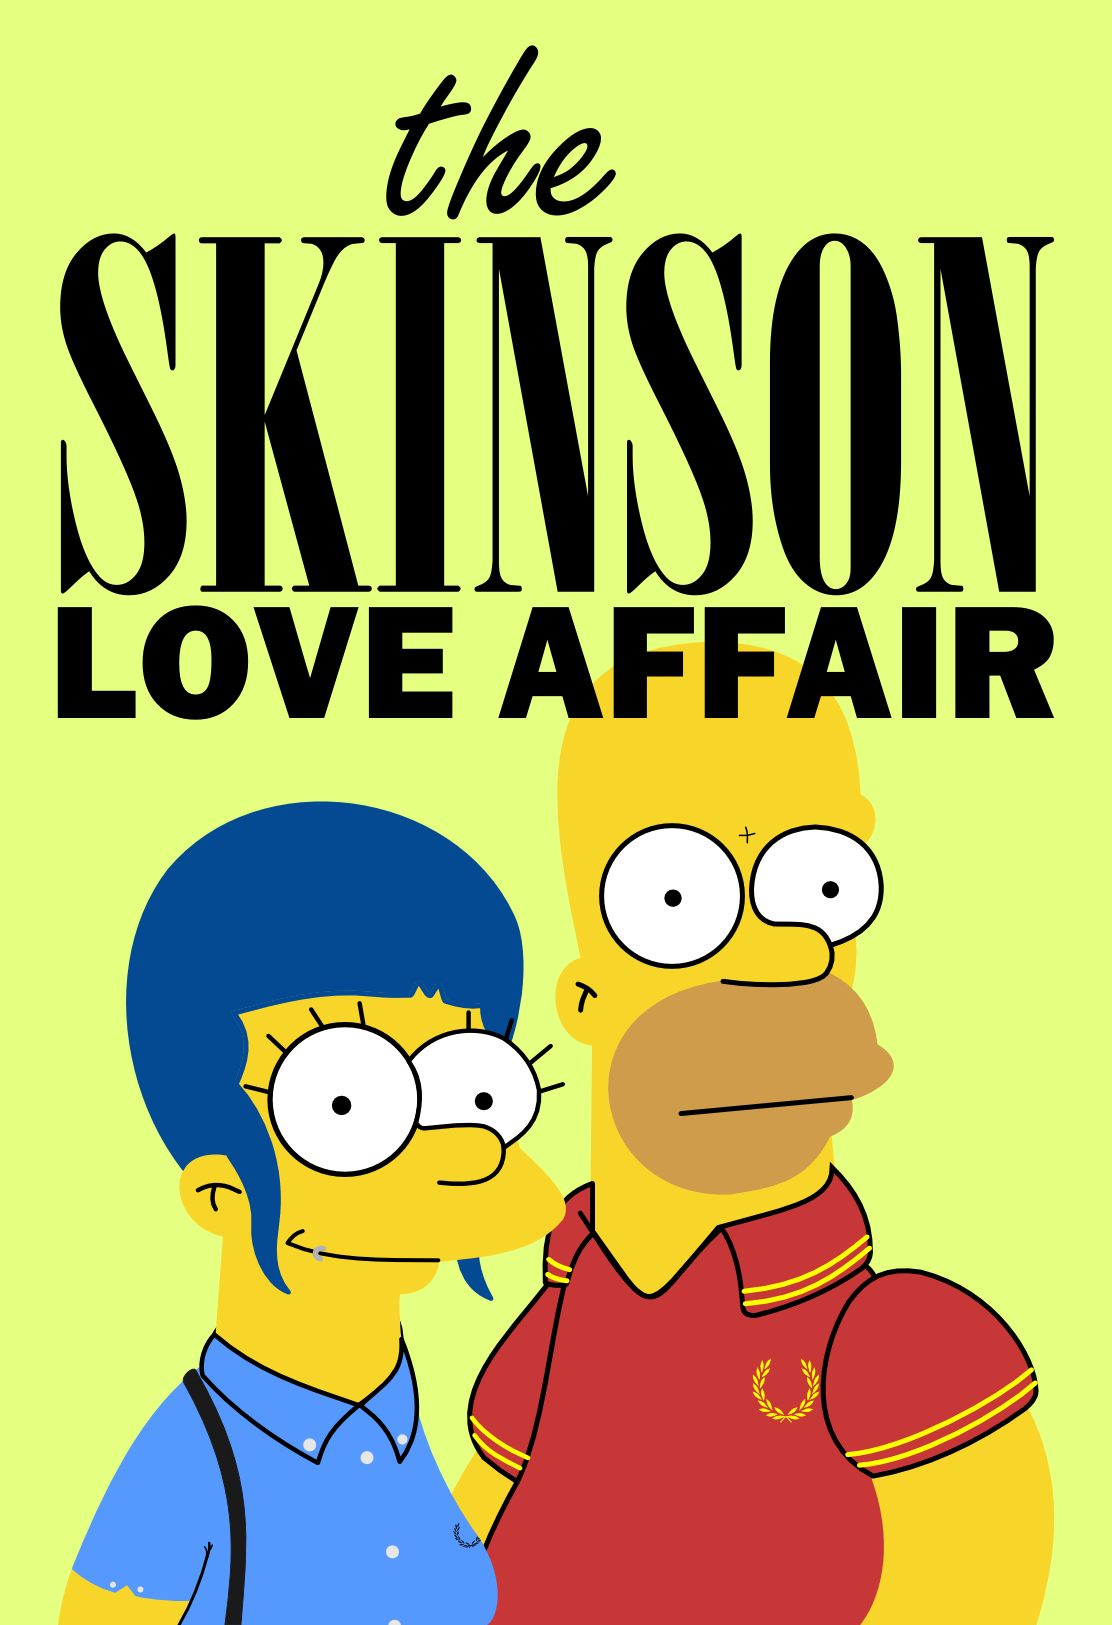 The Skinson Love Affair by daskai